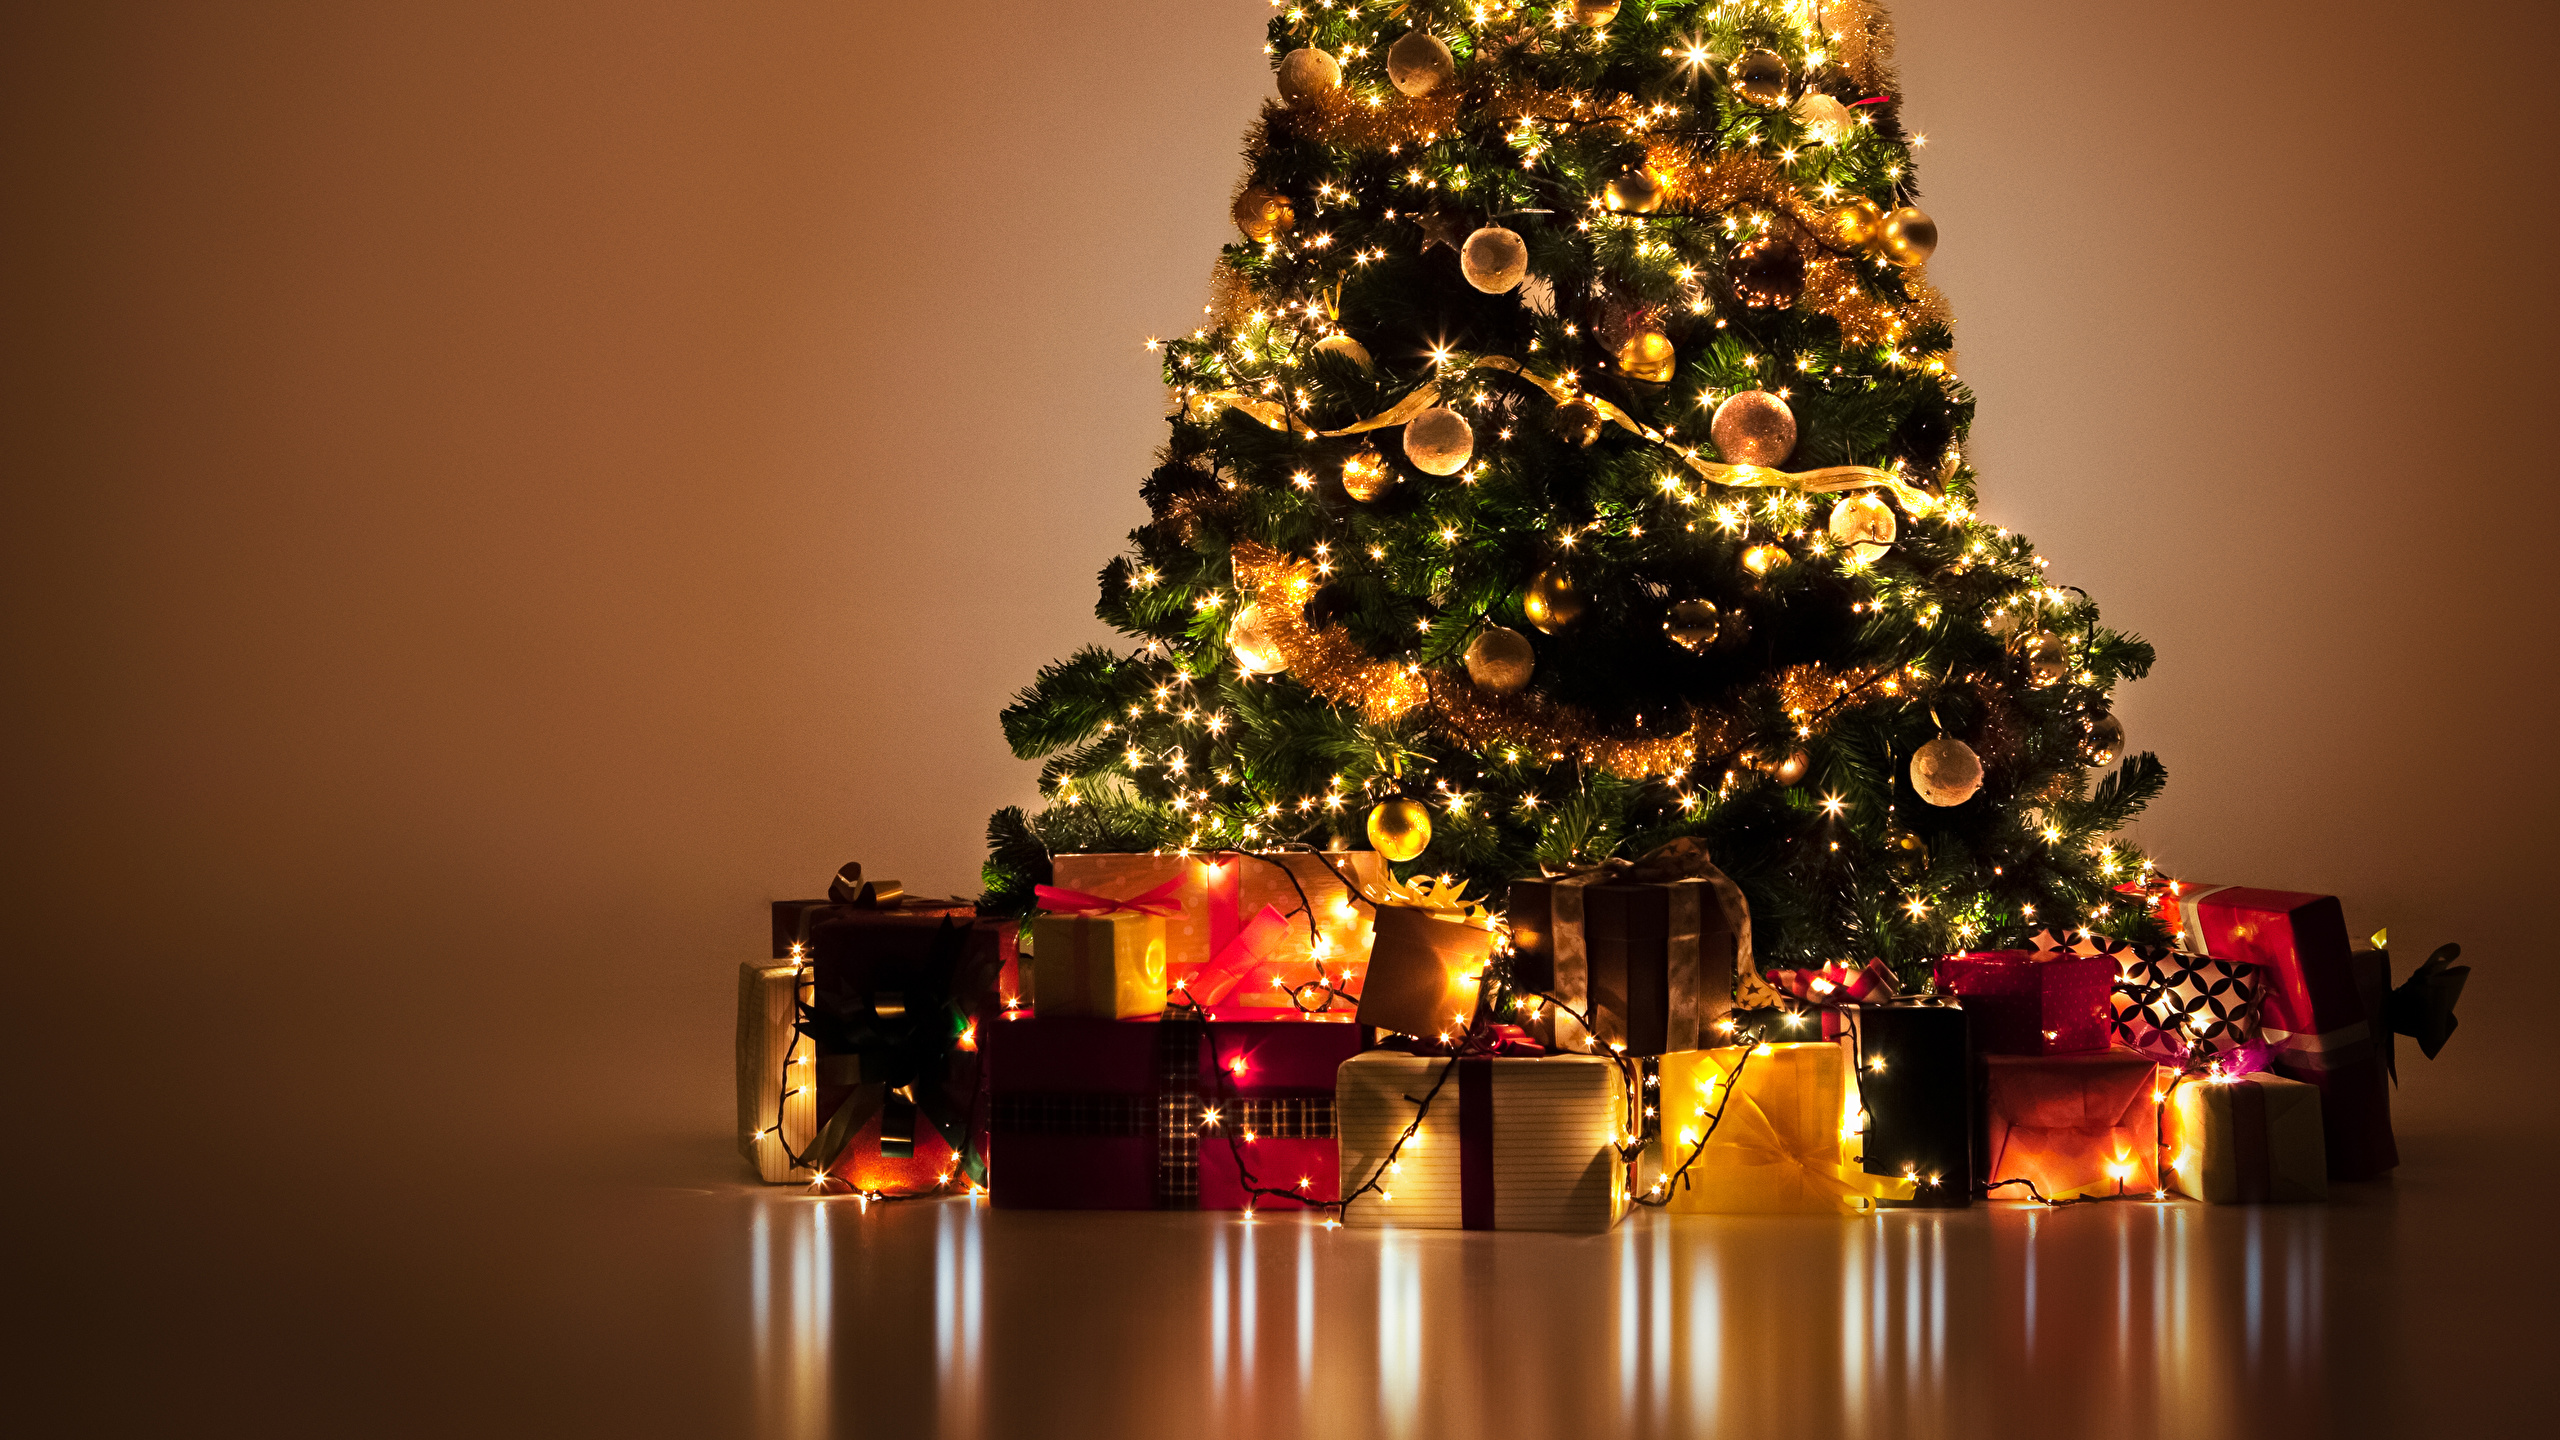 Picture Christmas New Year Tree Present Fairy Lights 2560x1440